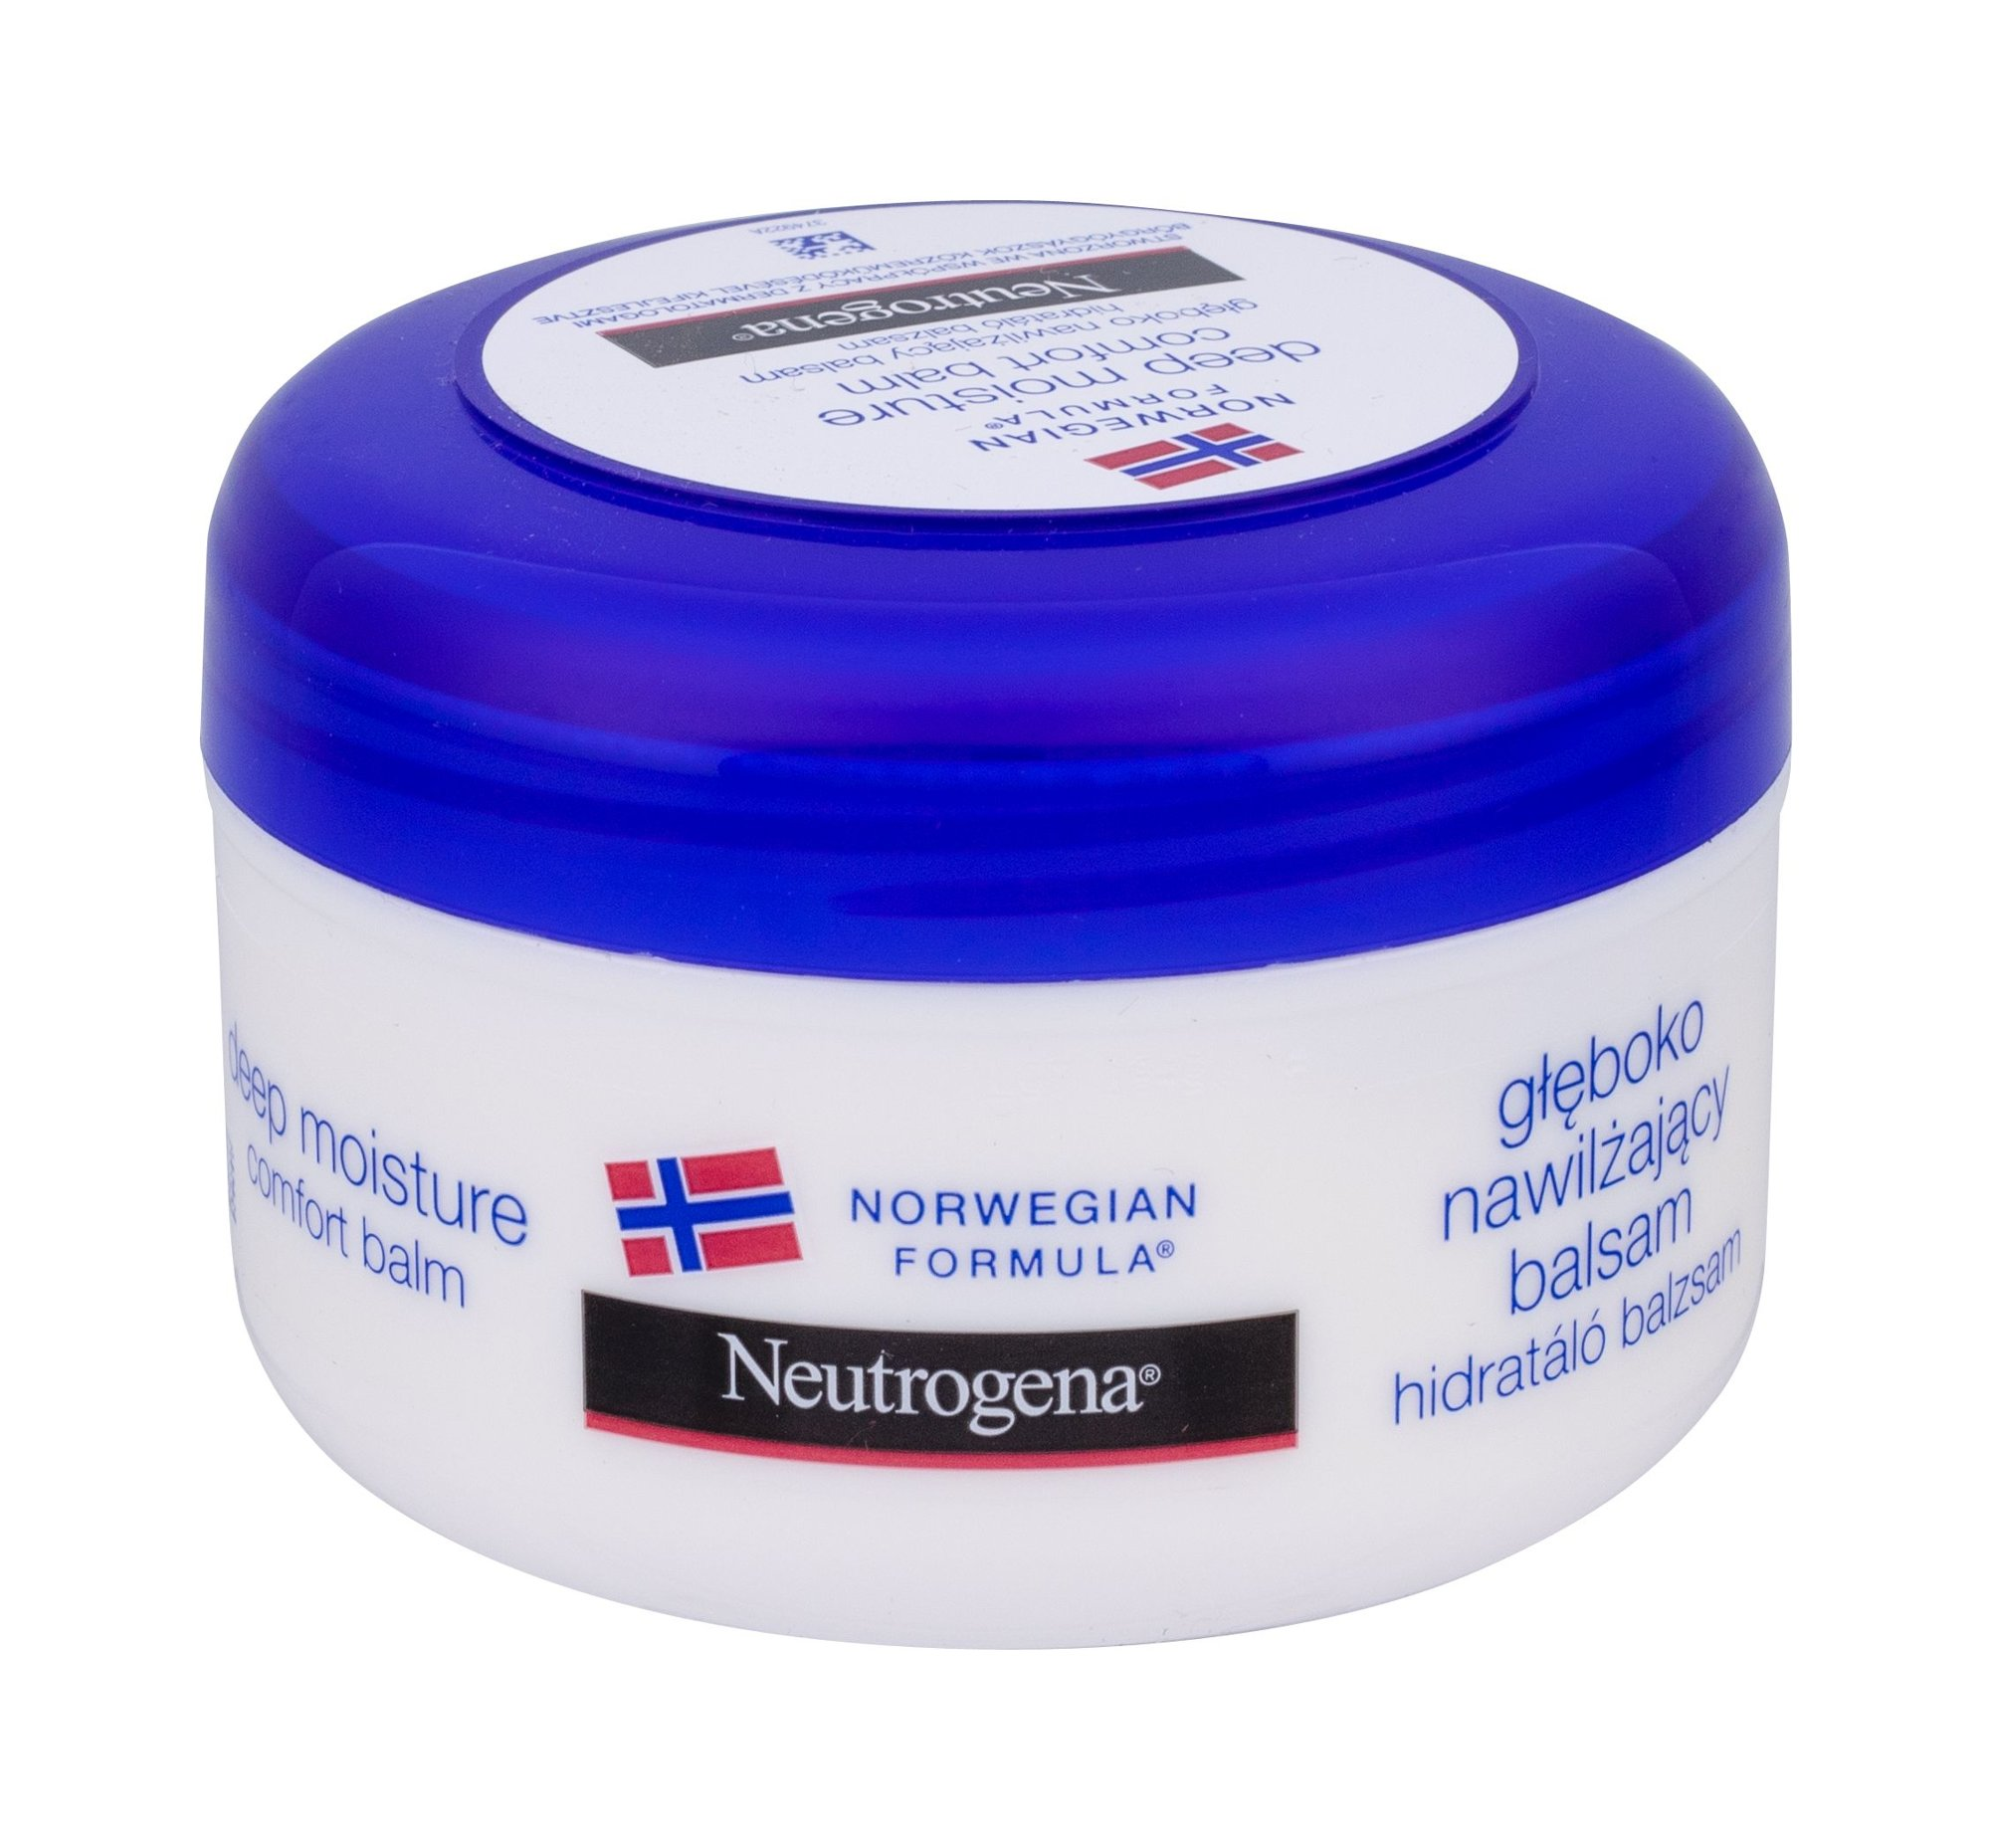 Neutrogena Norwegian Formula Cosmetic 200ml  Deep Moisture